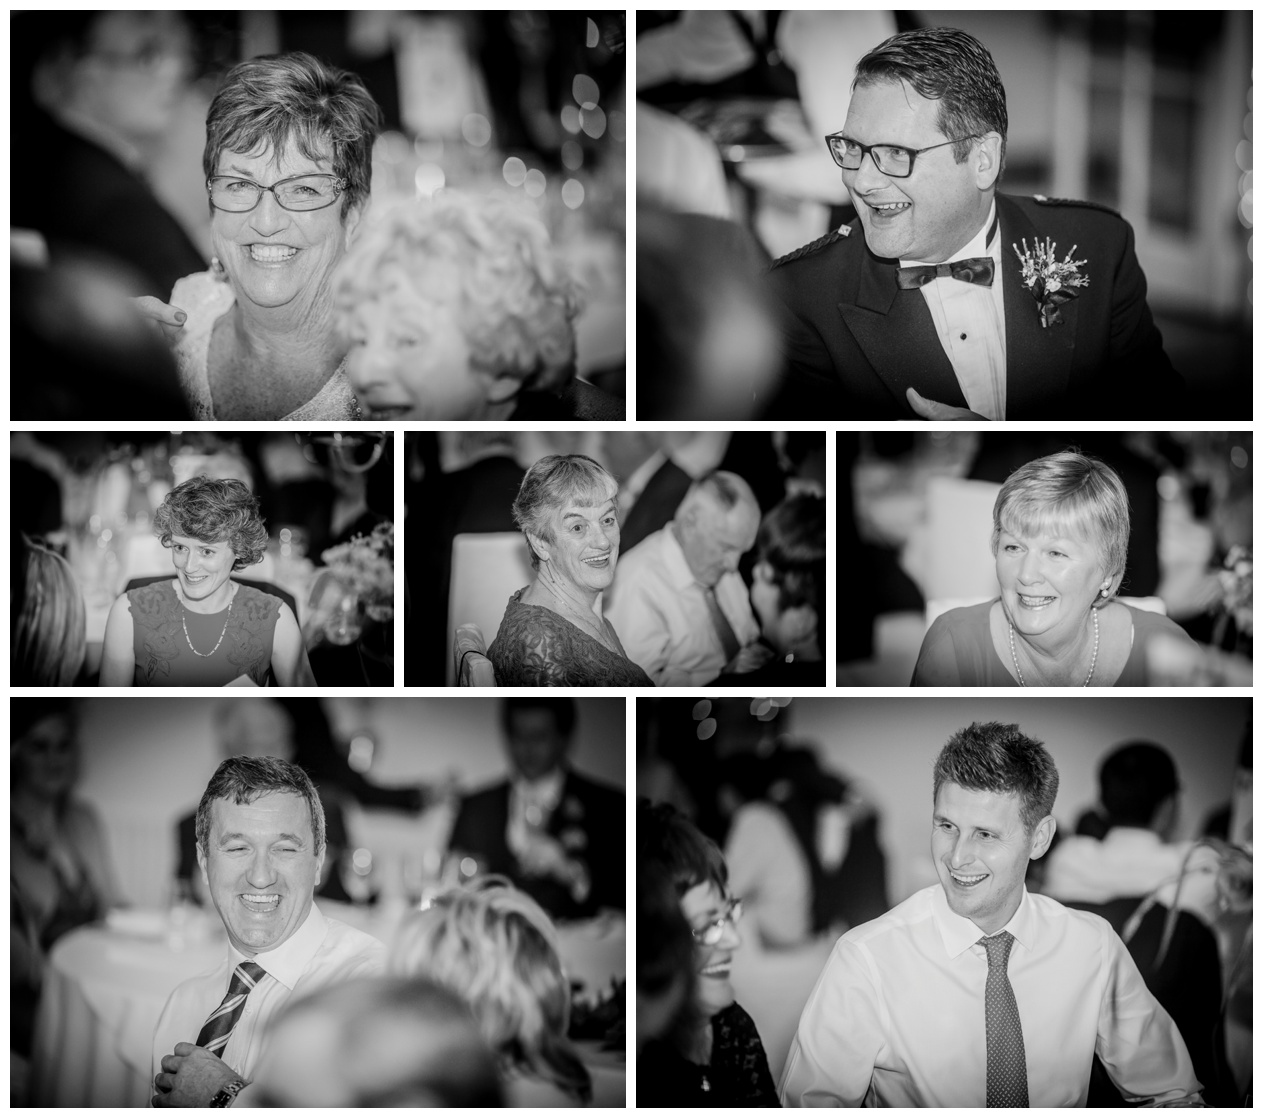 kilshane-house-wedding-photographers-92